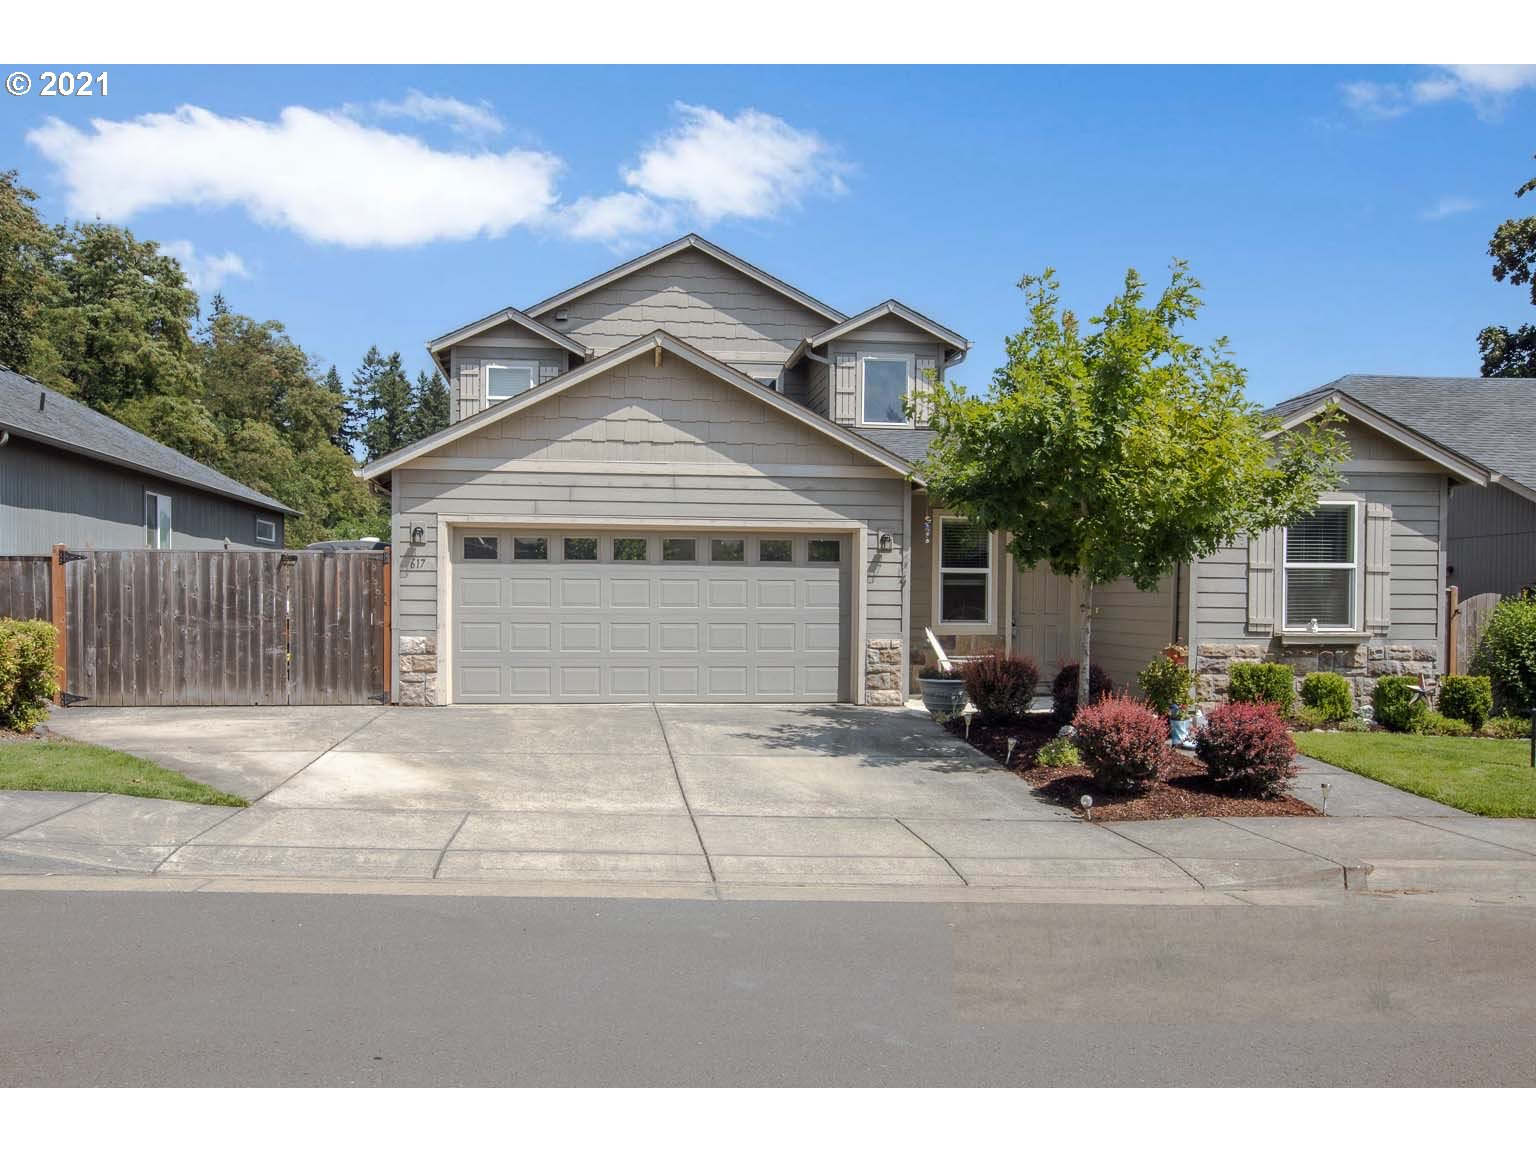 617 S 49TH PL, Springfield OR 97478